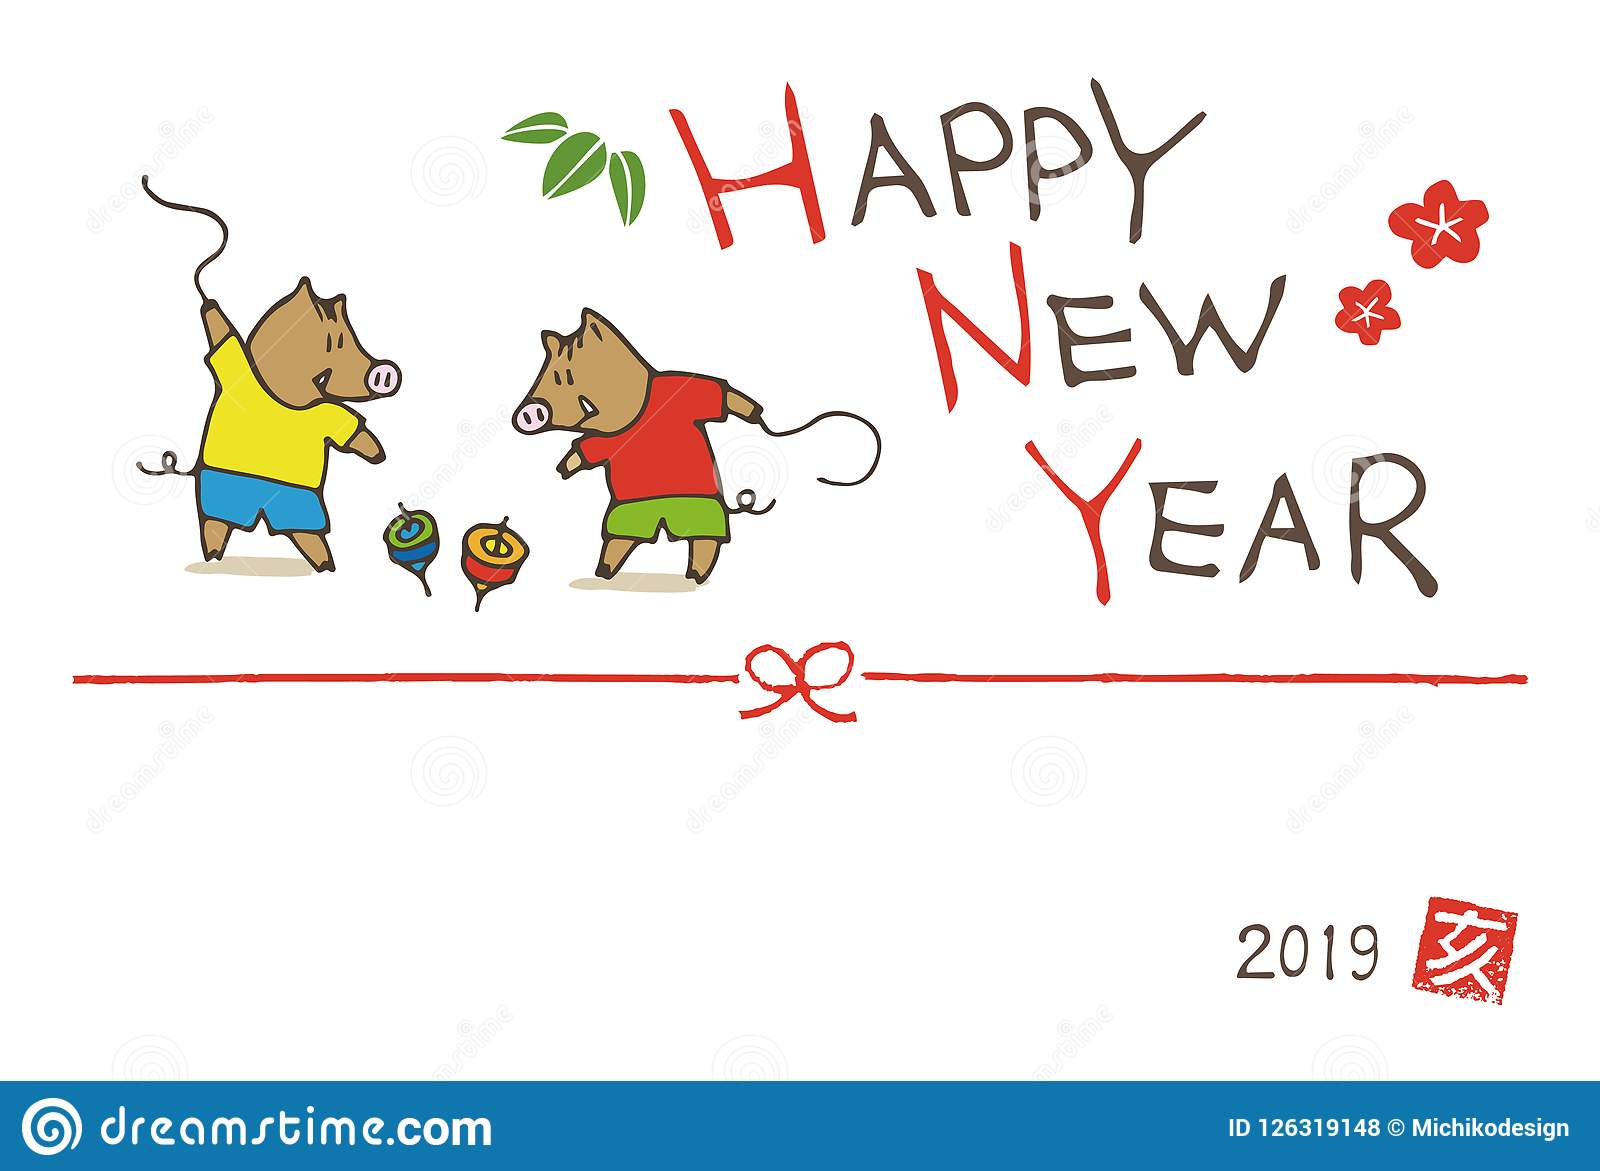 New year greeting card with wild boars playing spinning top toys